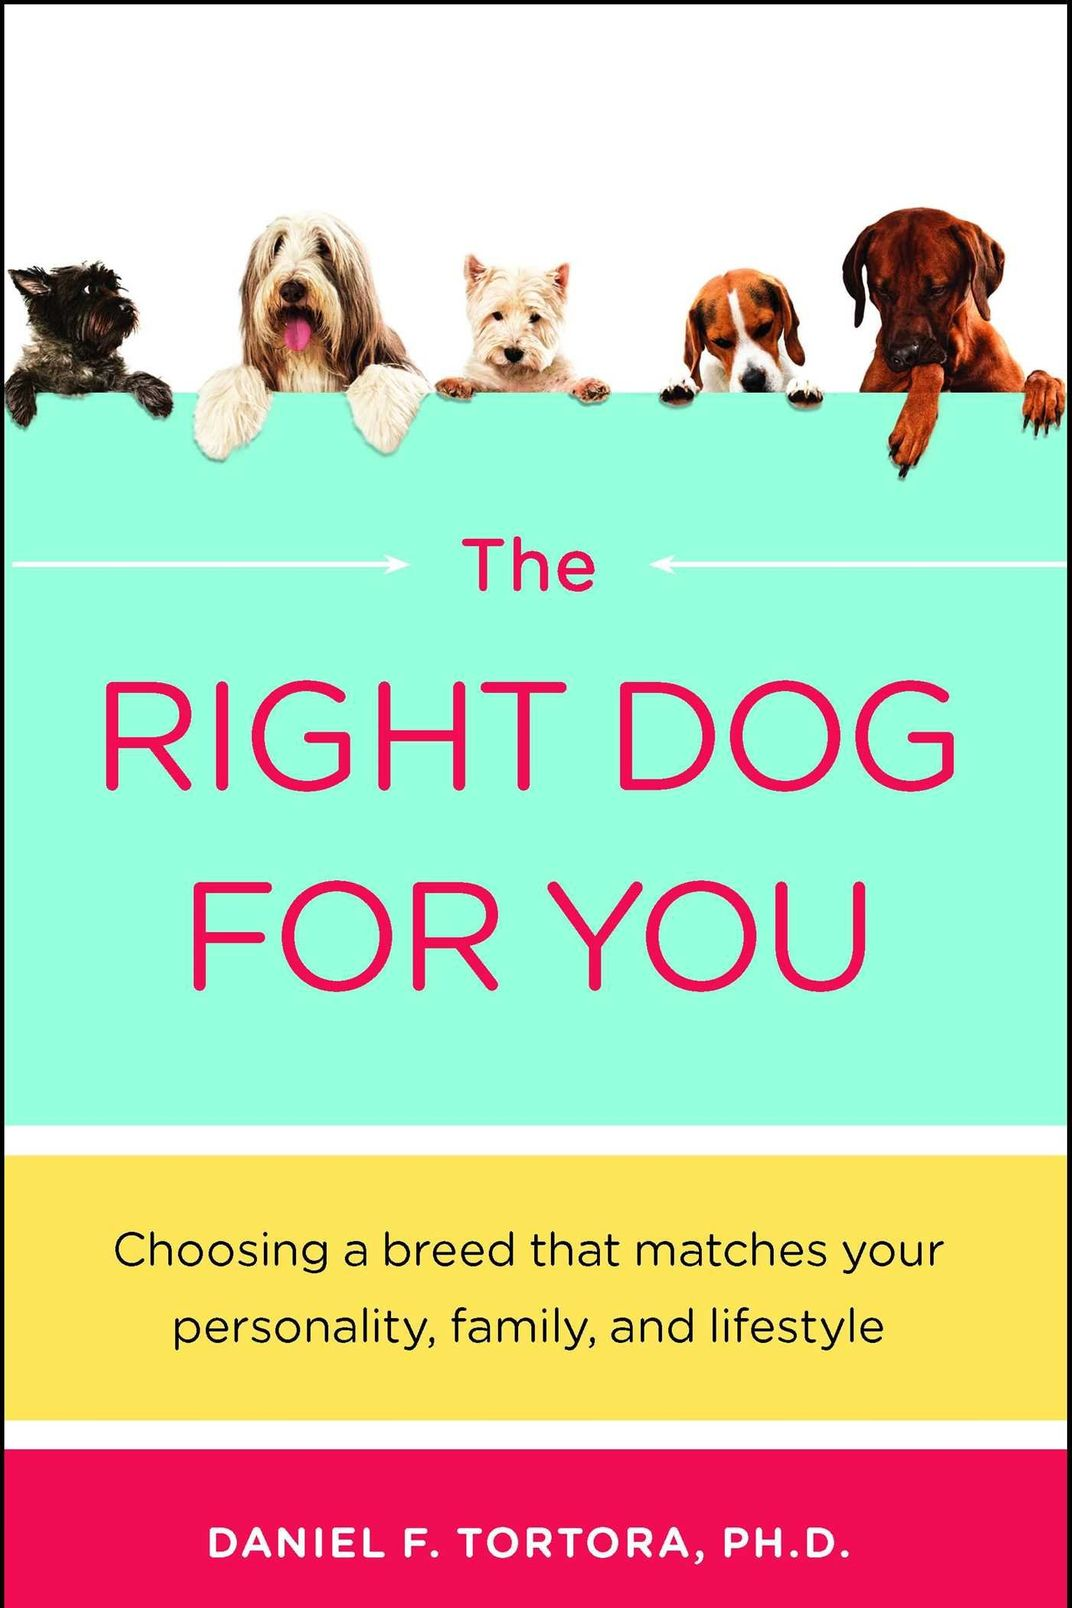 <em>The Right Dog For You</em>, by Daniel F. Tortora